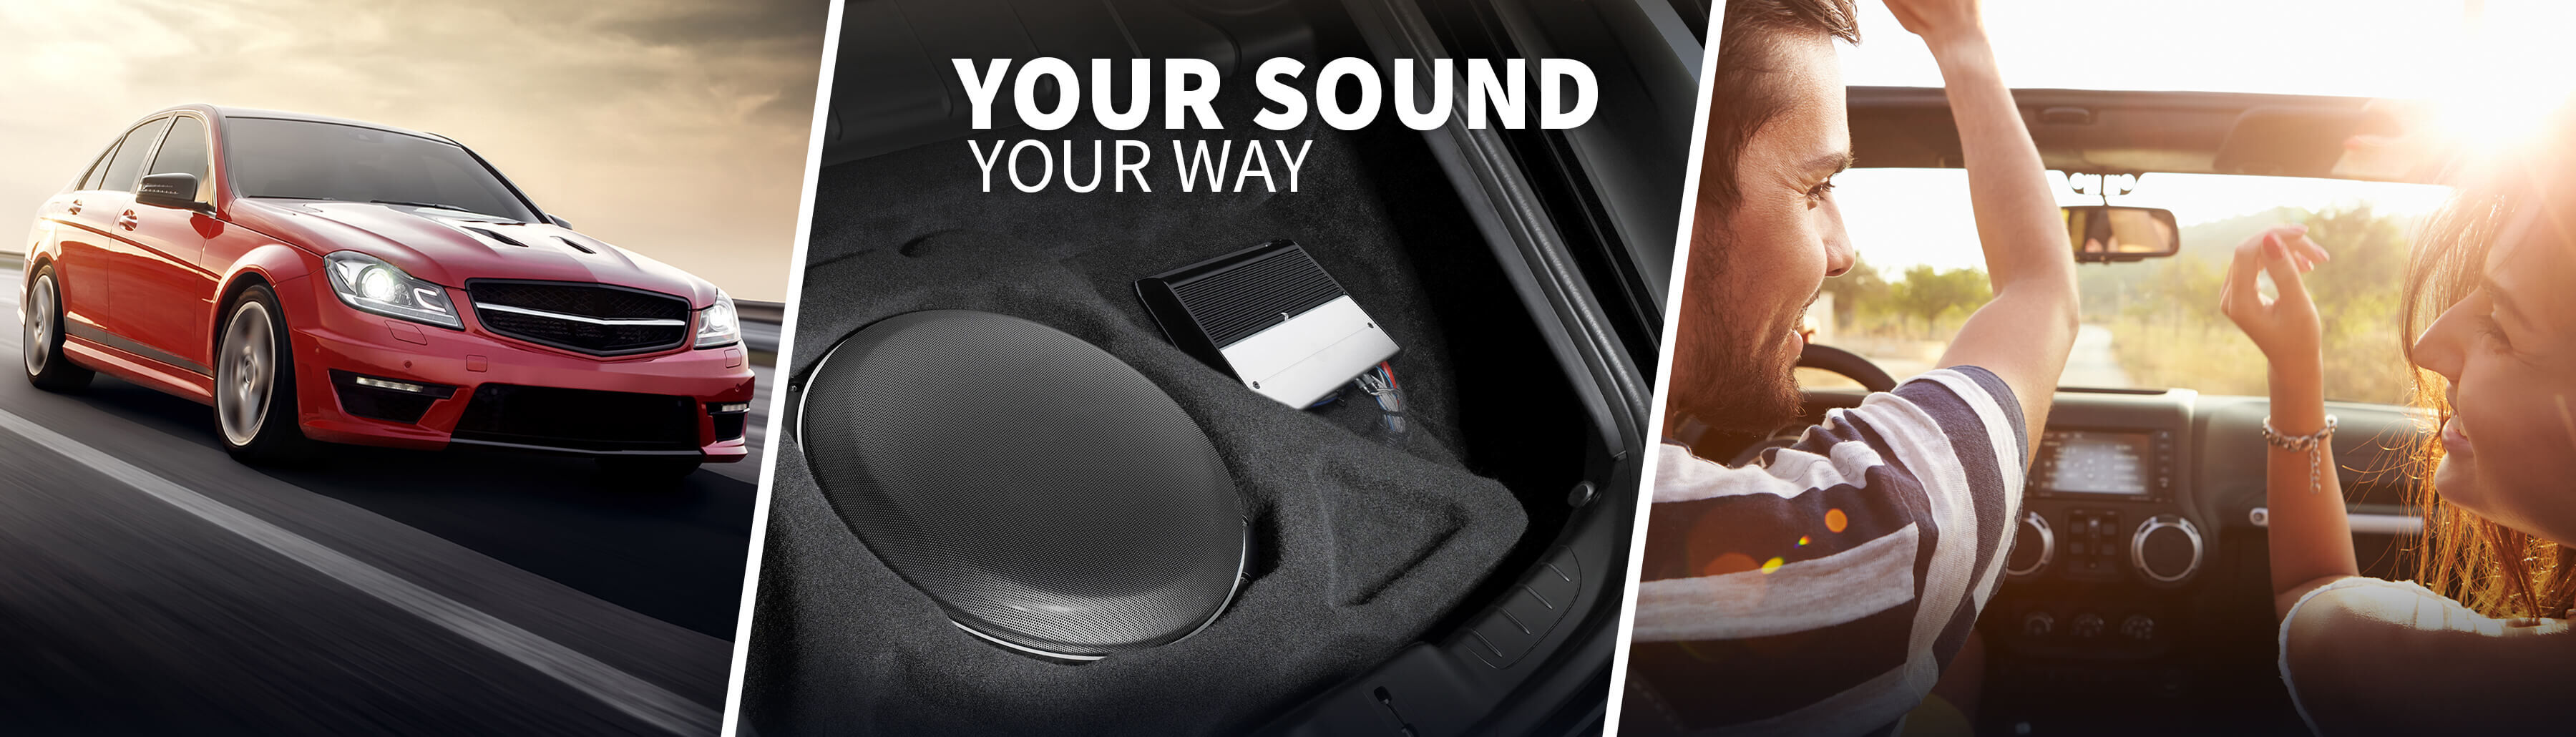 Car Audio | Speakers, Amplifiers, & Subwoofers